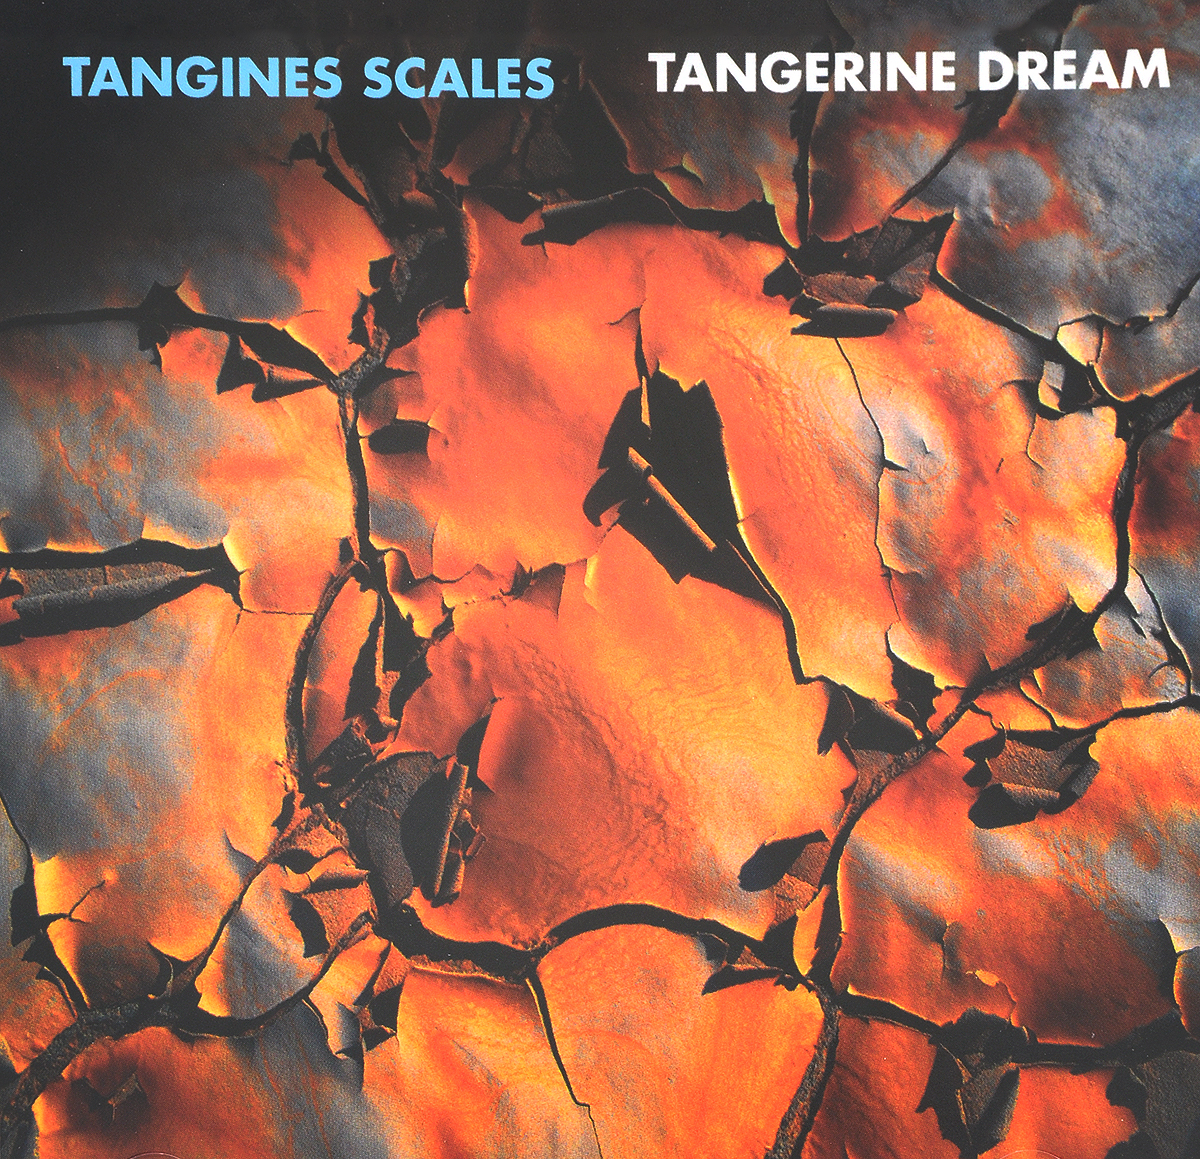 Tangerine Dream. Tangines Scales